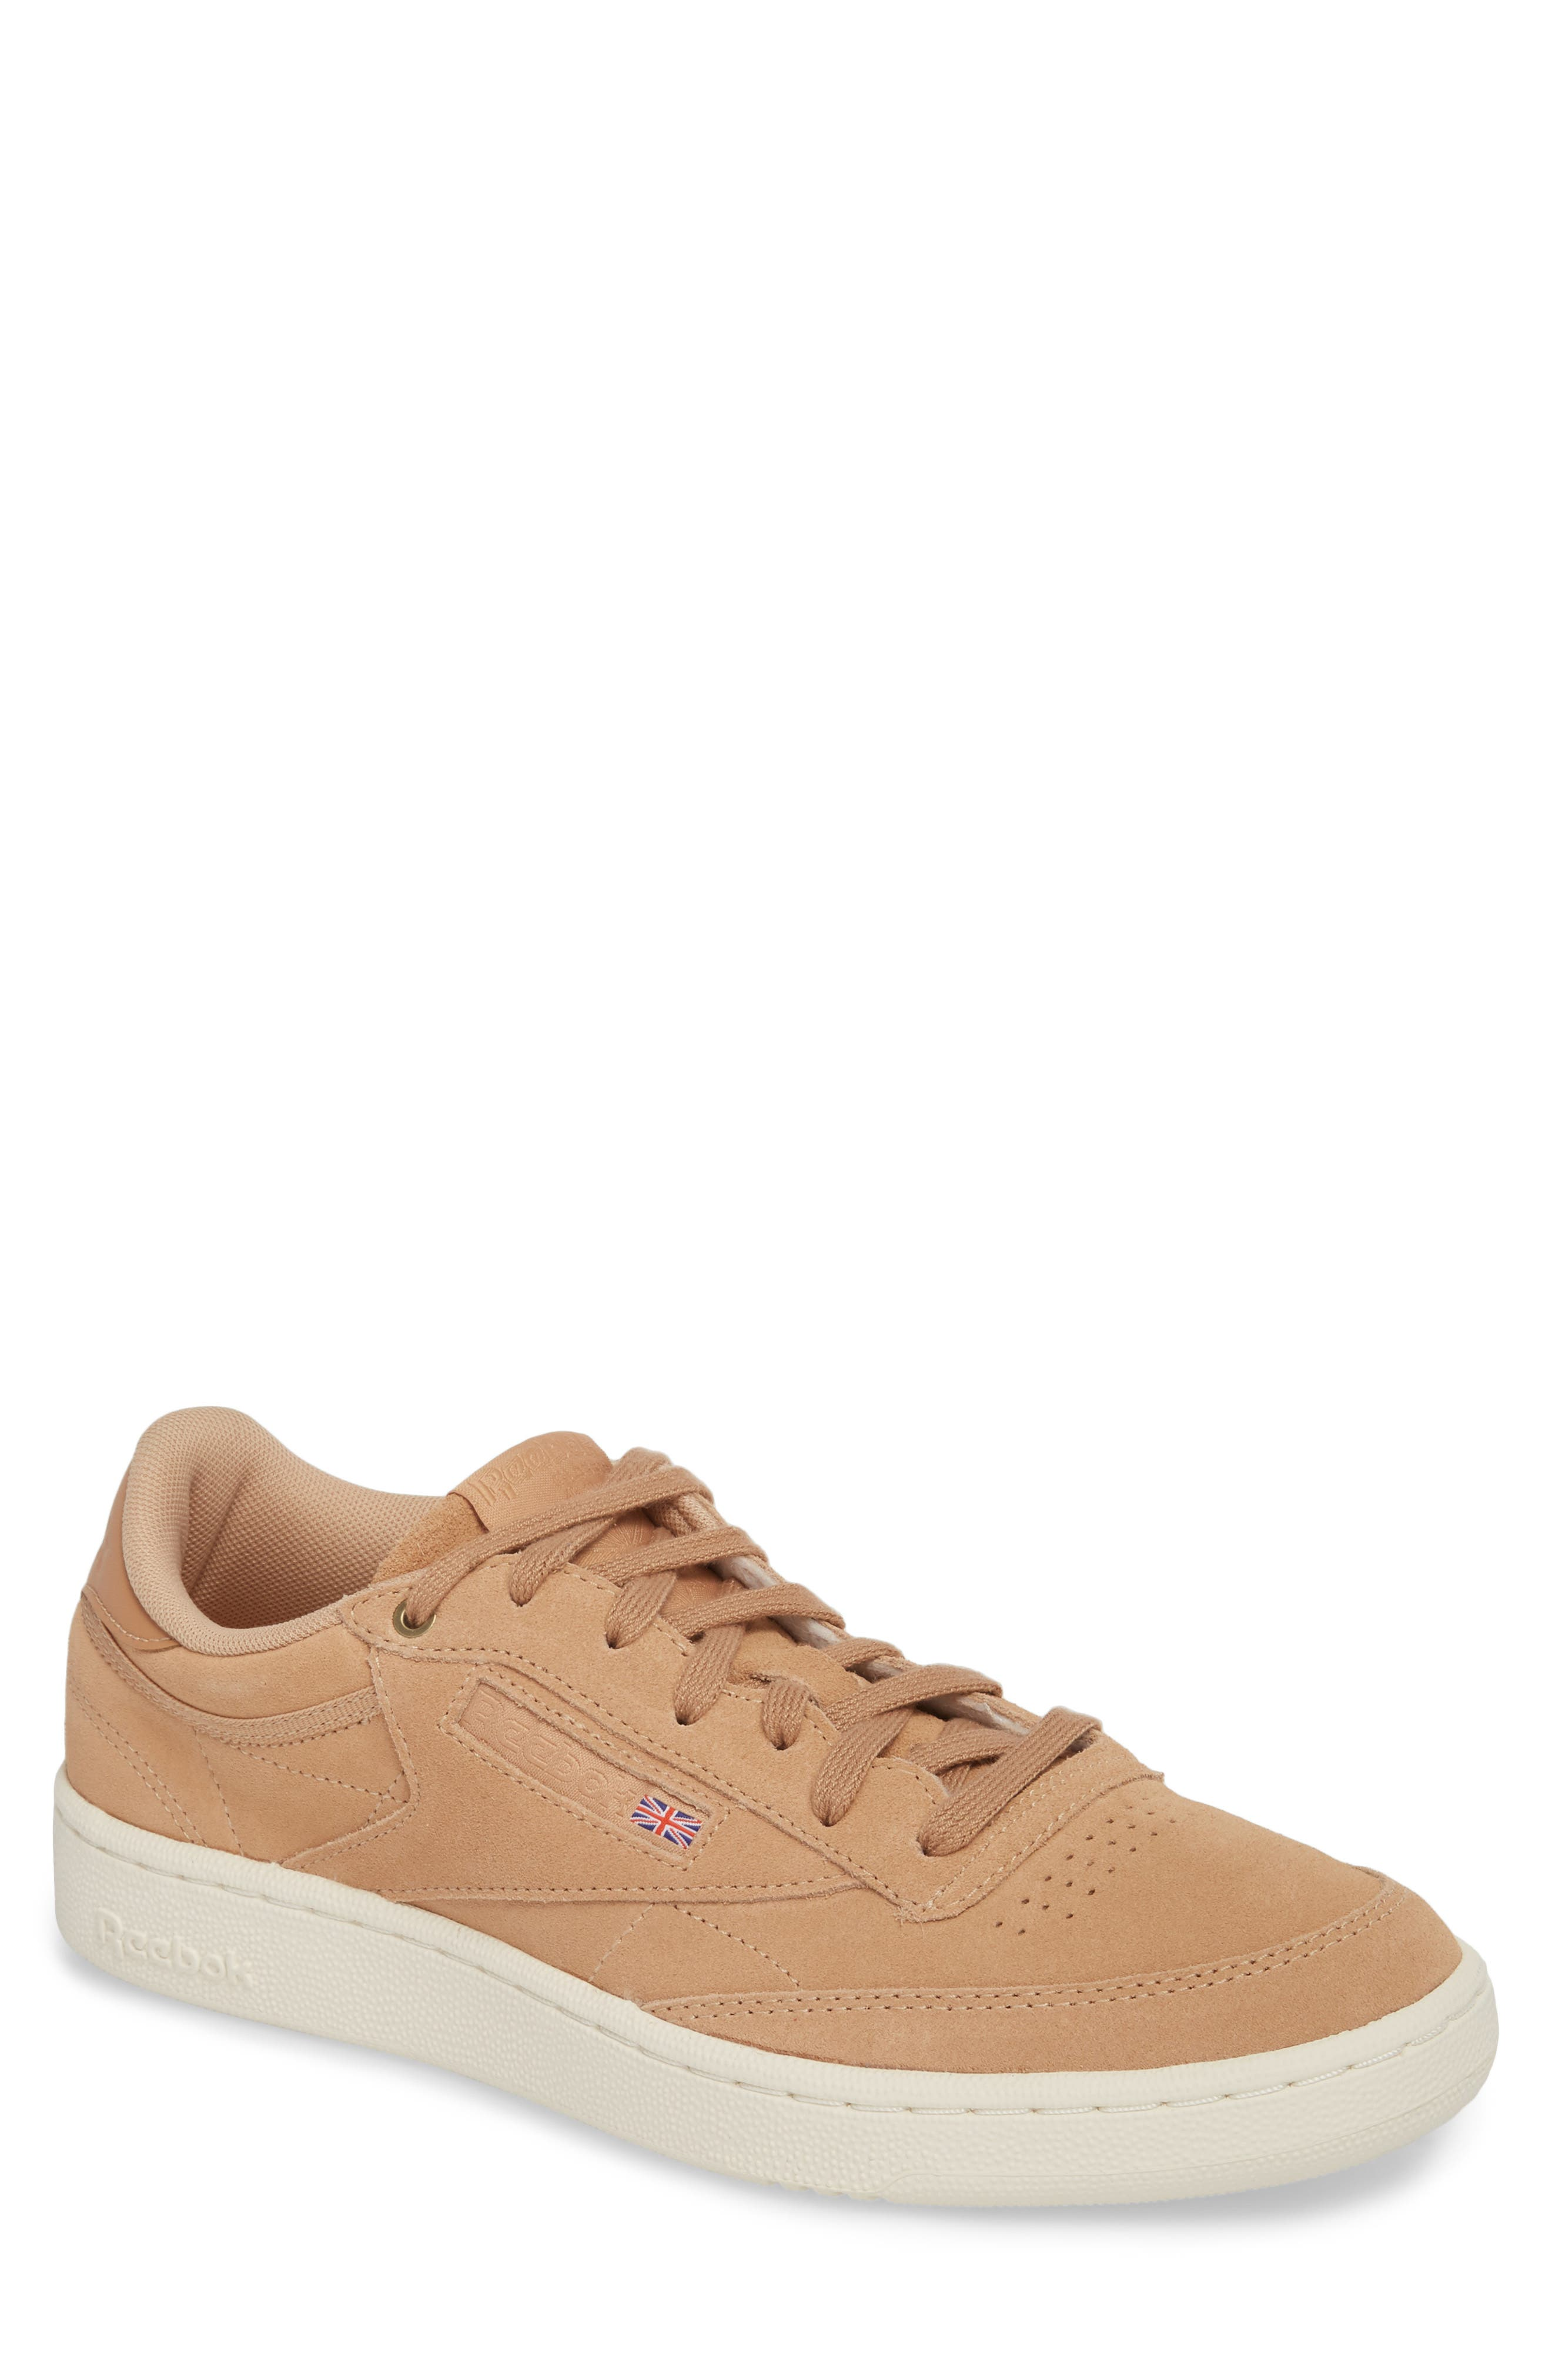 Reebok Club C 85 MCC Sneaker (Men)